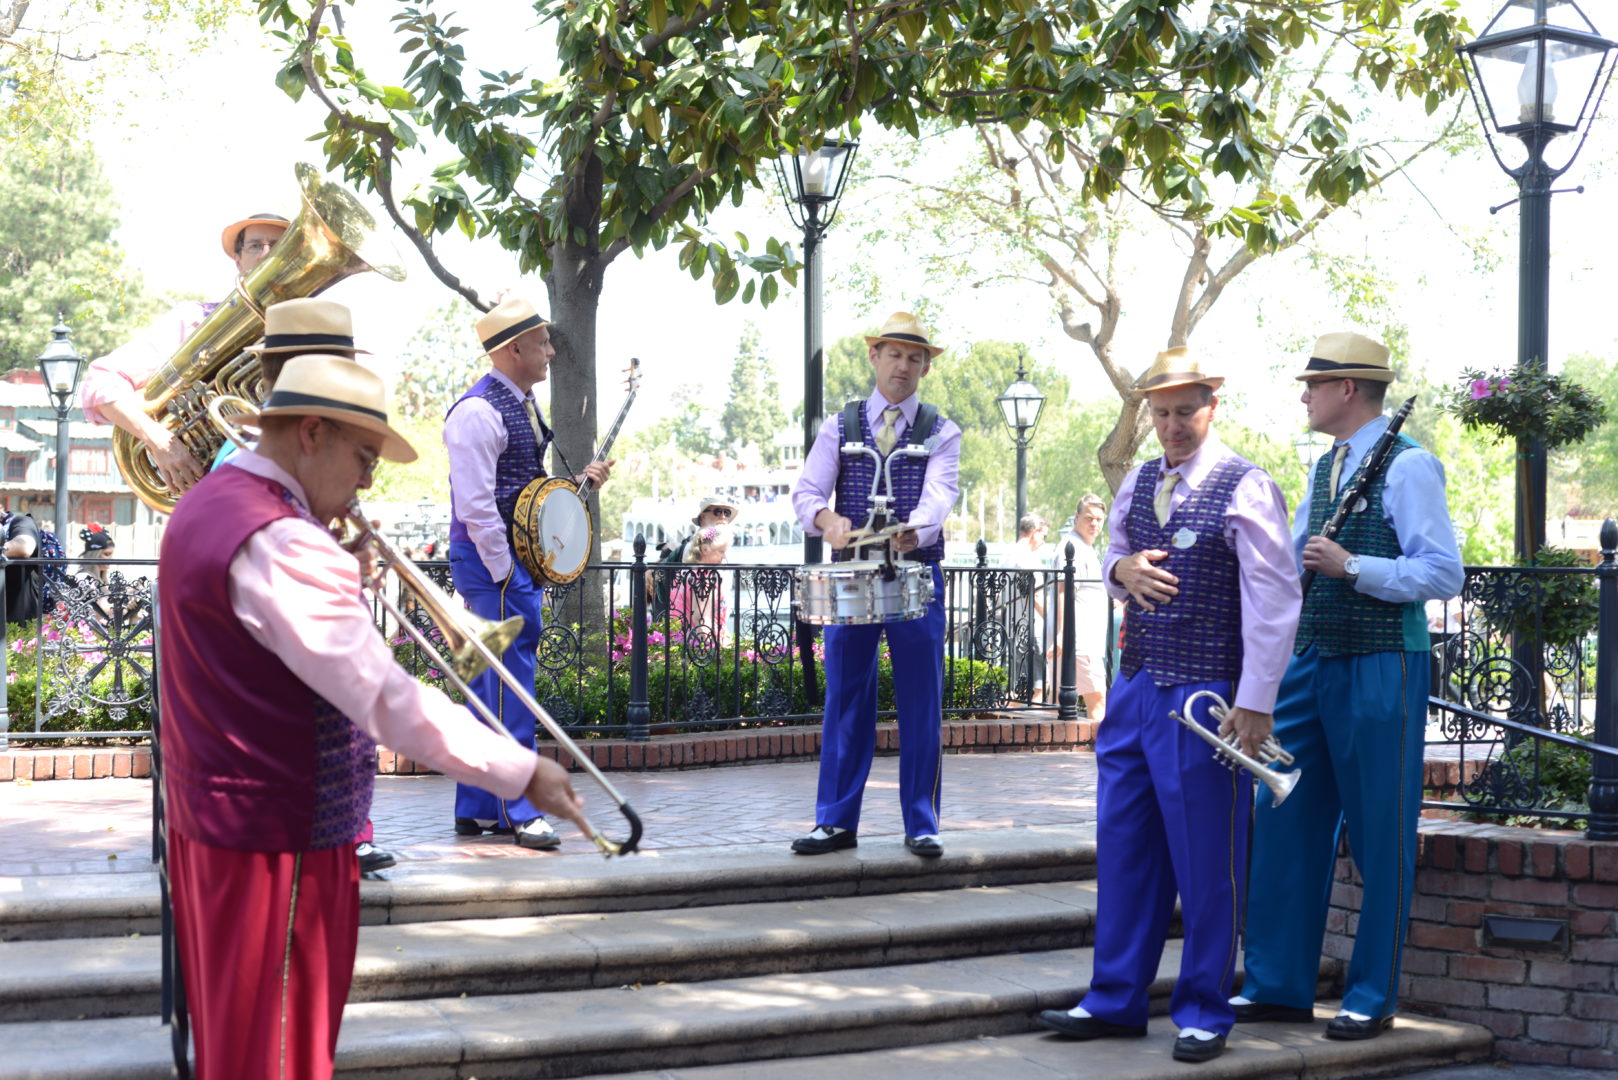 Jambalaya Jazz Band playing in New Orleans Square at Disneyland